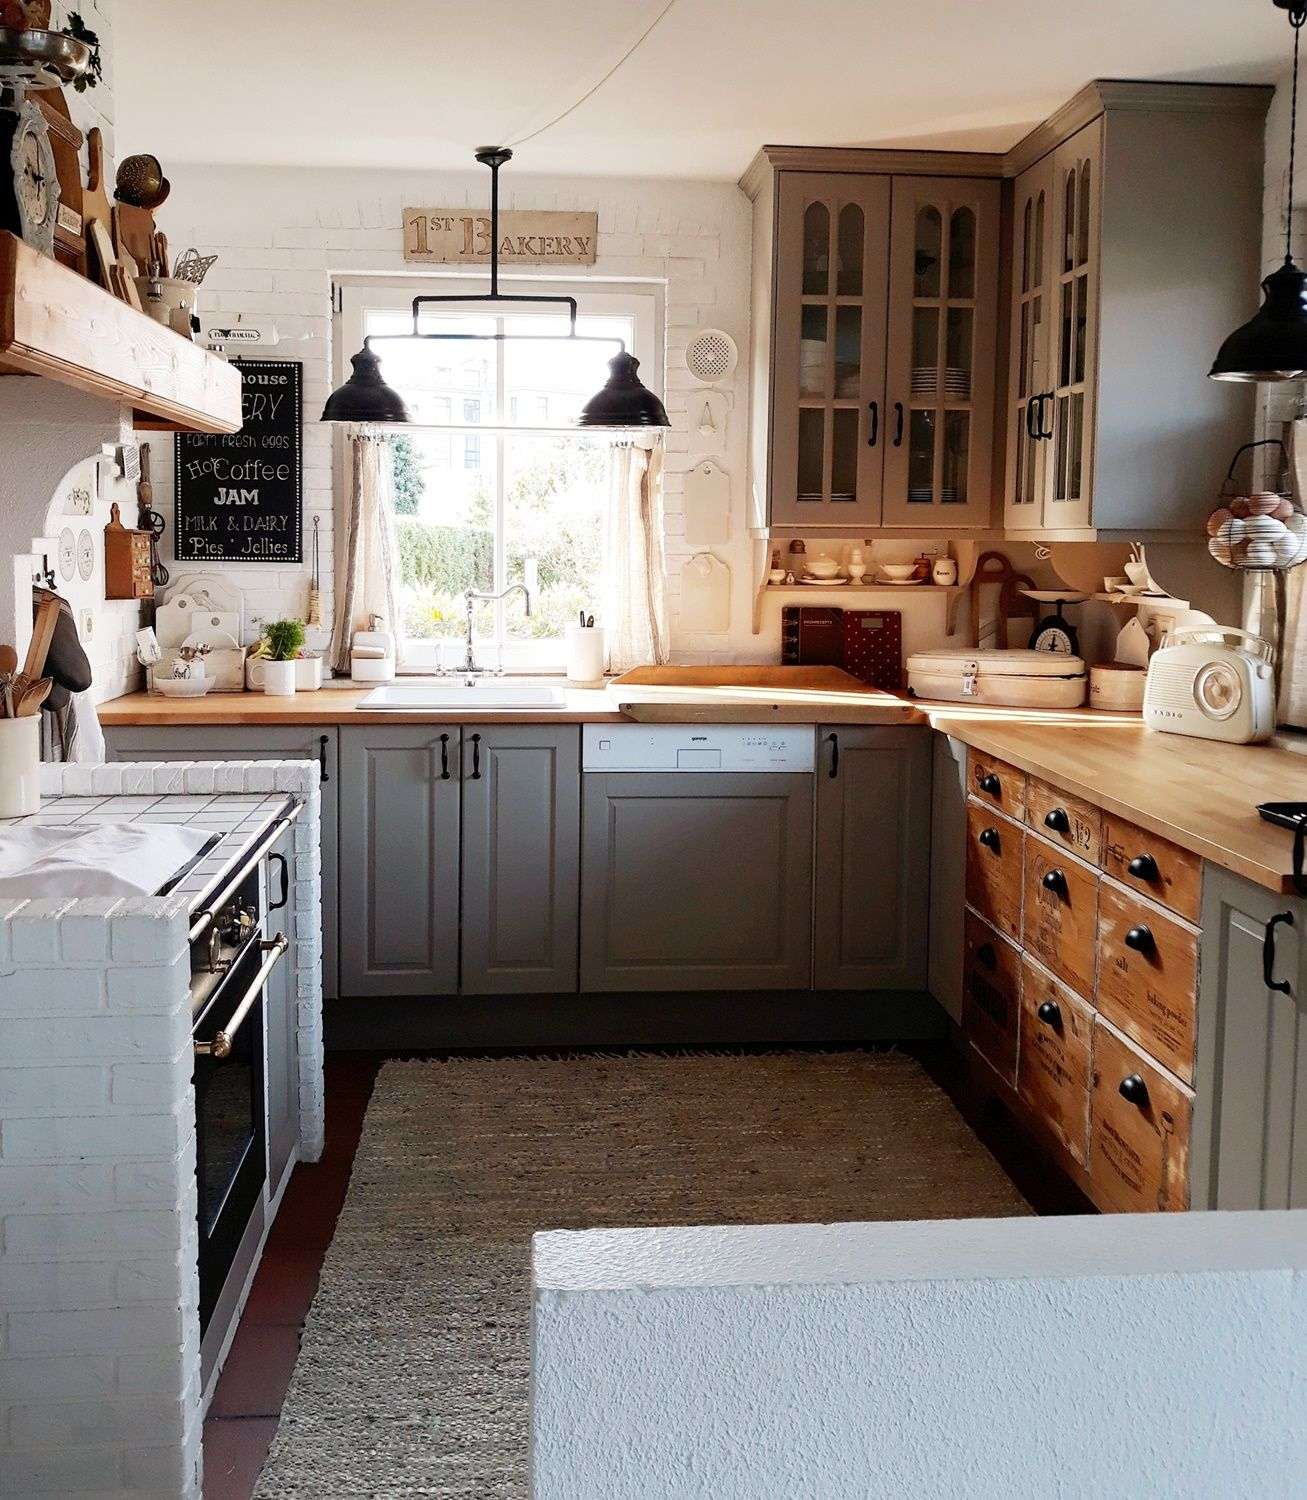 Pin By Stephanie Flynn On Kitchens Pantries In 2020 Kitchen Kitchen Pantry Kitchen Cabinets